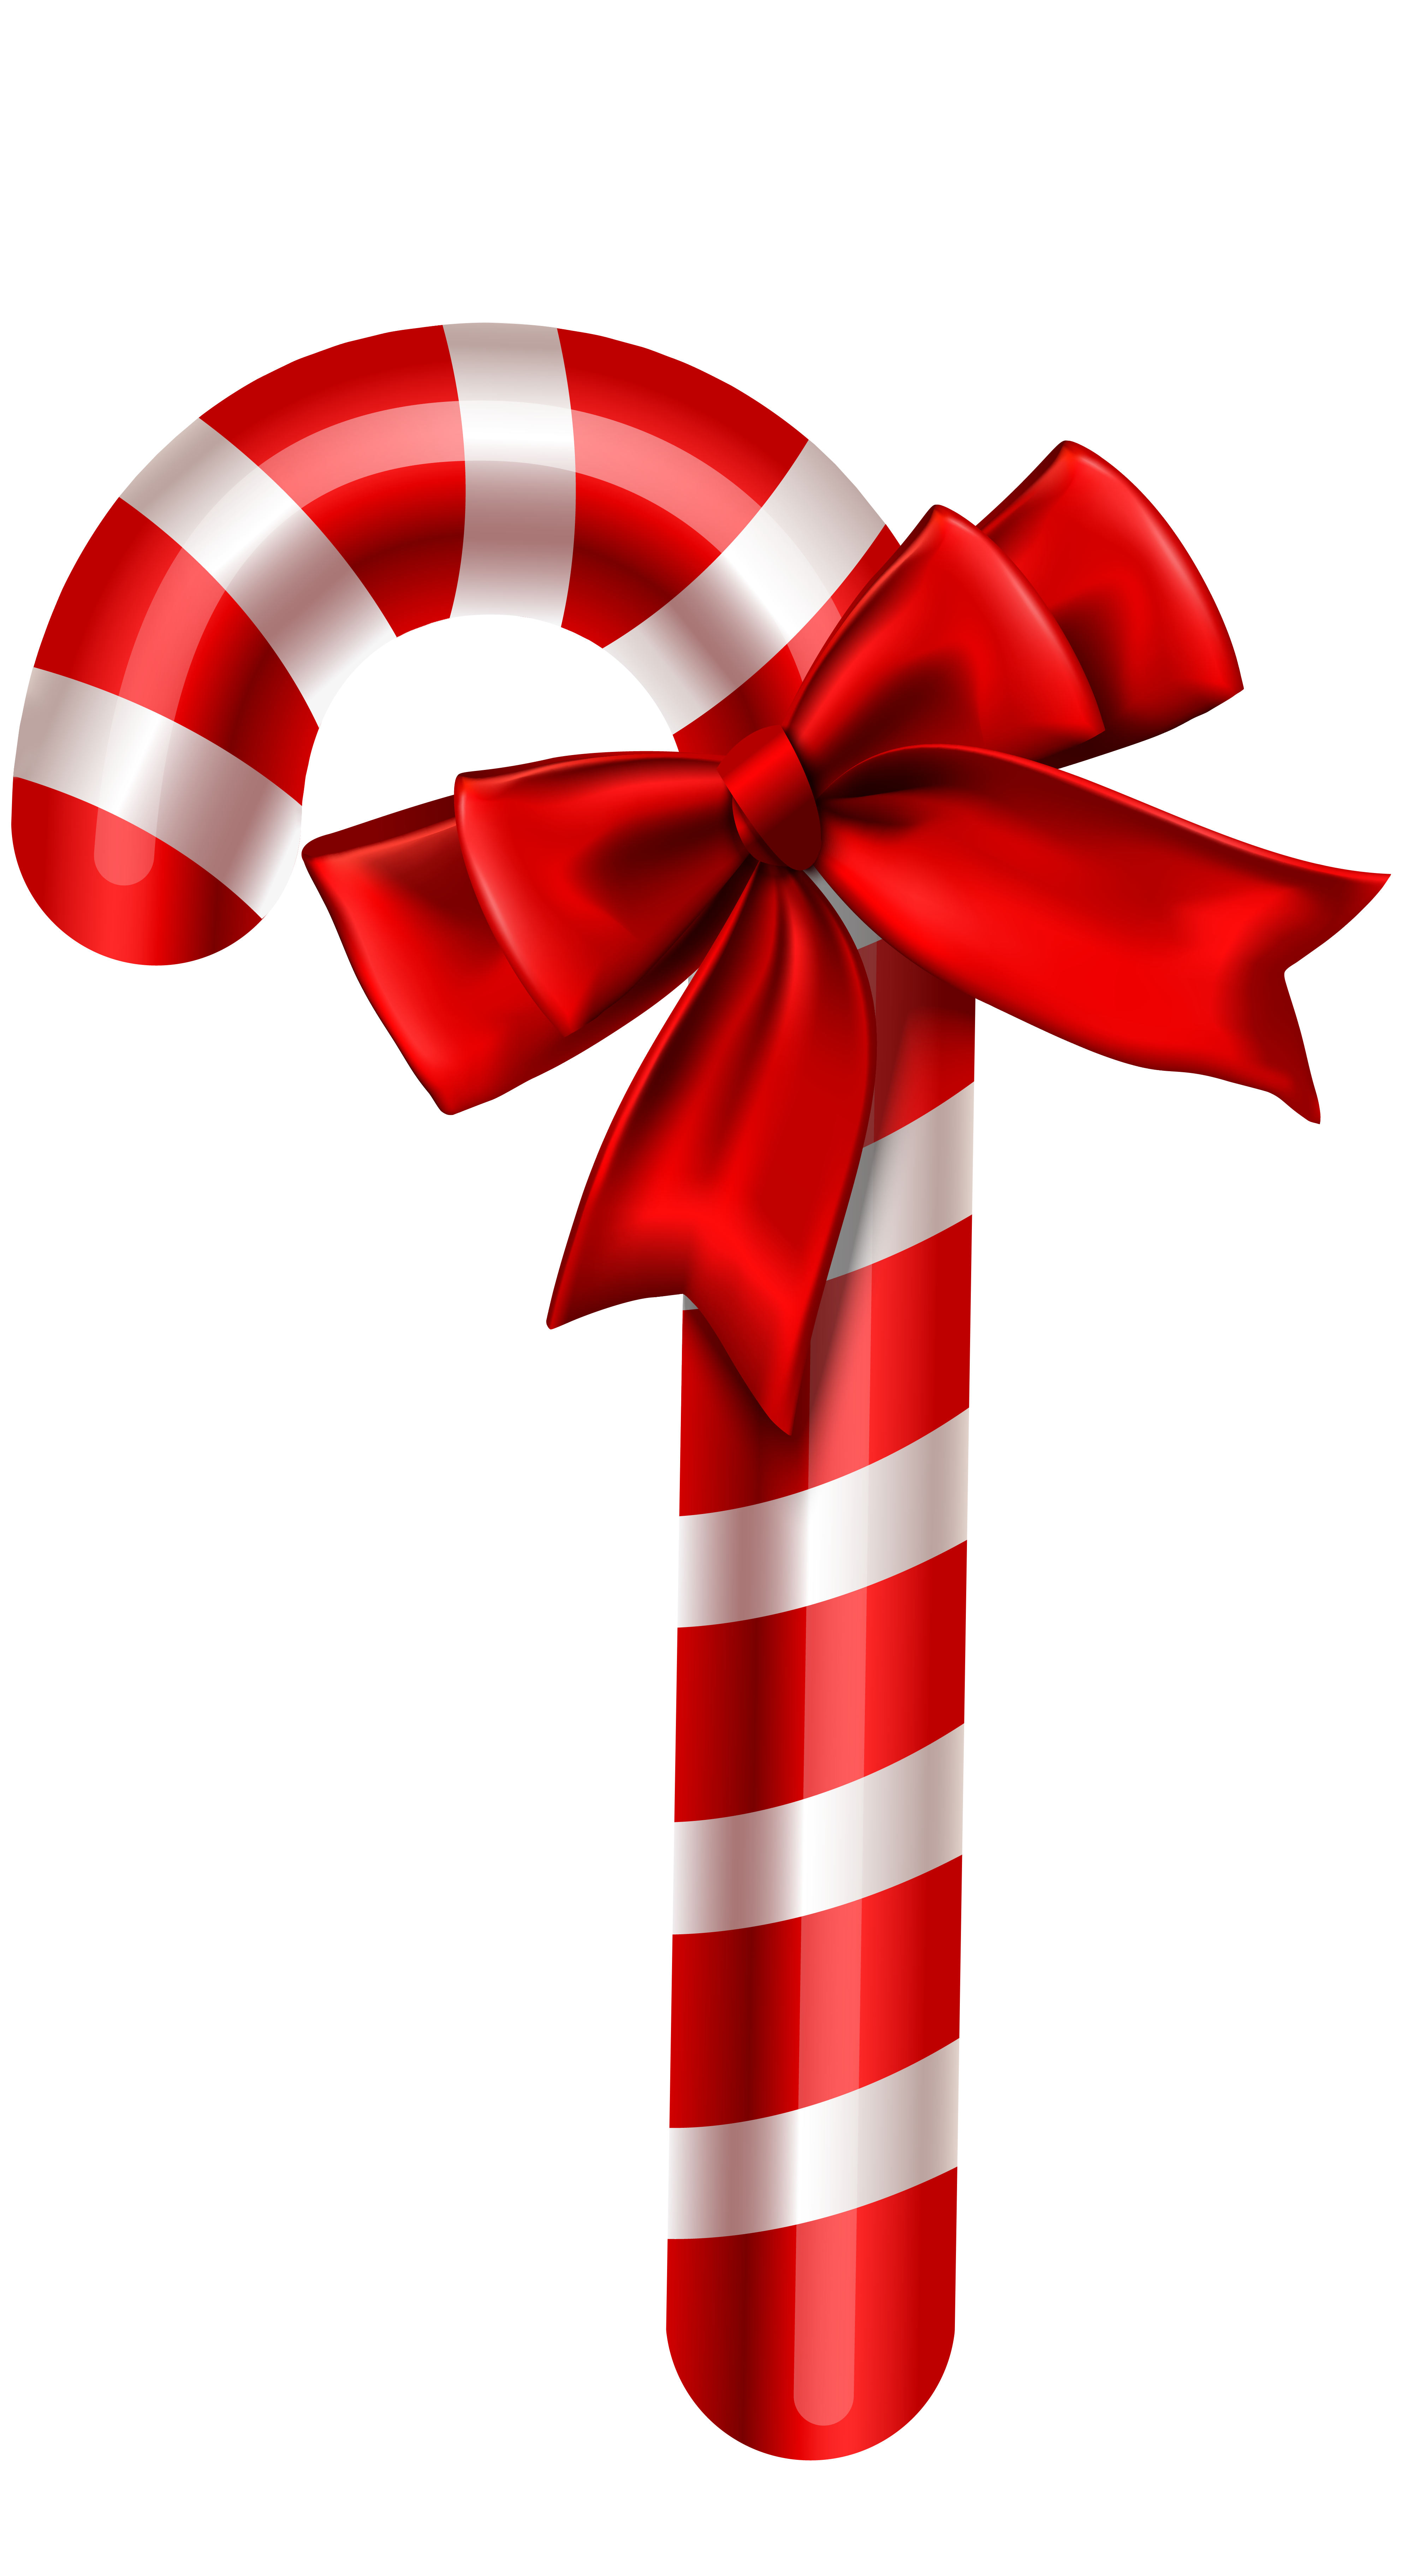 Candy Cane Christmas Ornament PNG Clipart Image.